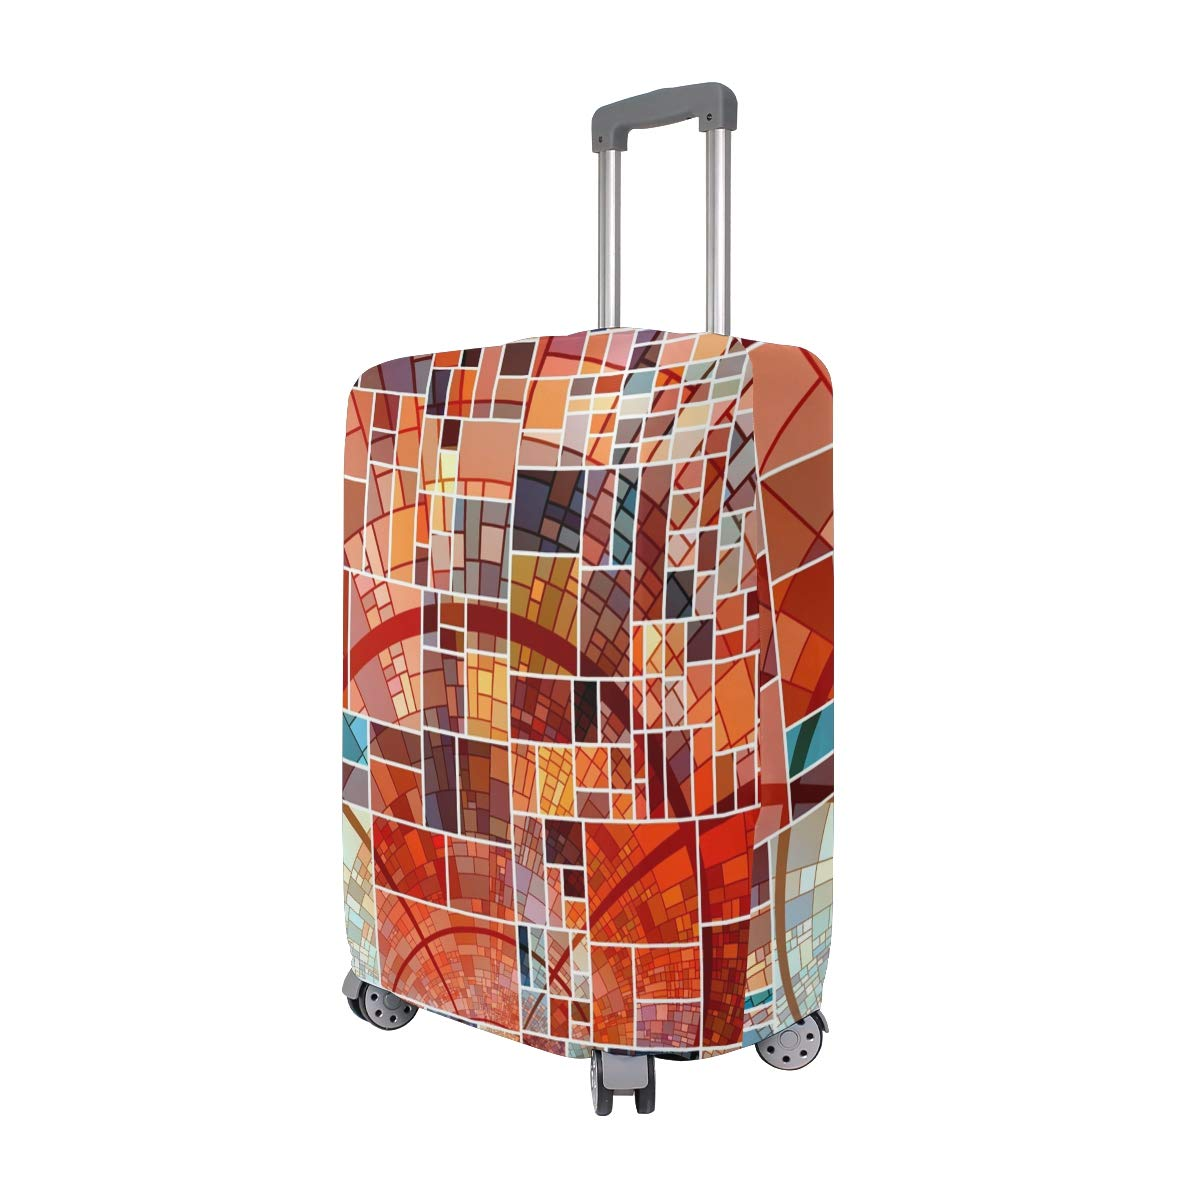 Travel Luggage Cover Abstract Squares Aesthetics Color Suitcase Protector Fits 26-28 Inch Washable Baggage Covers